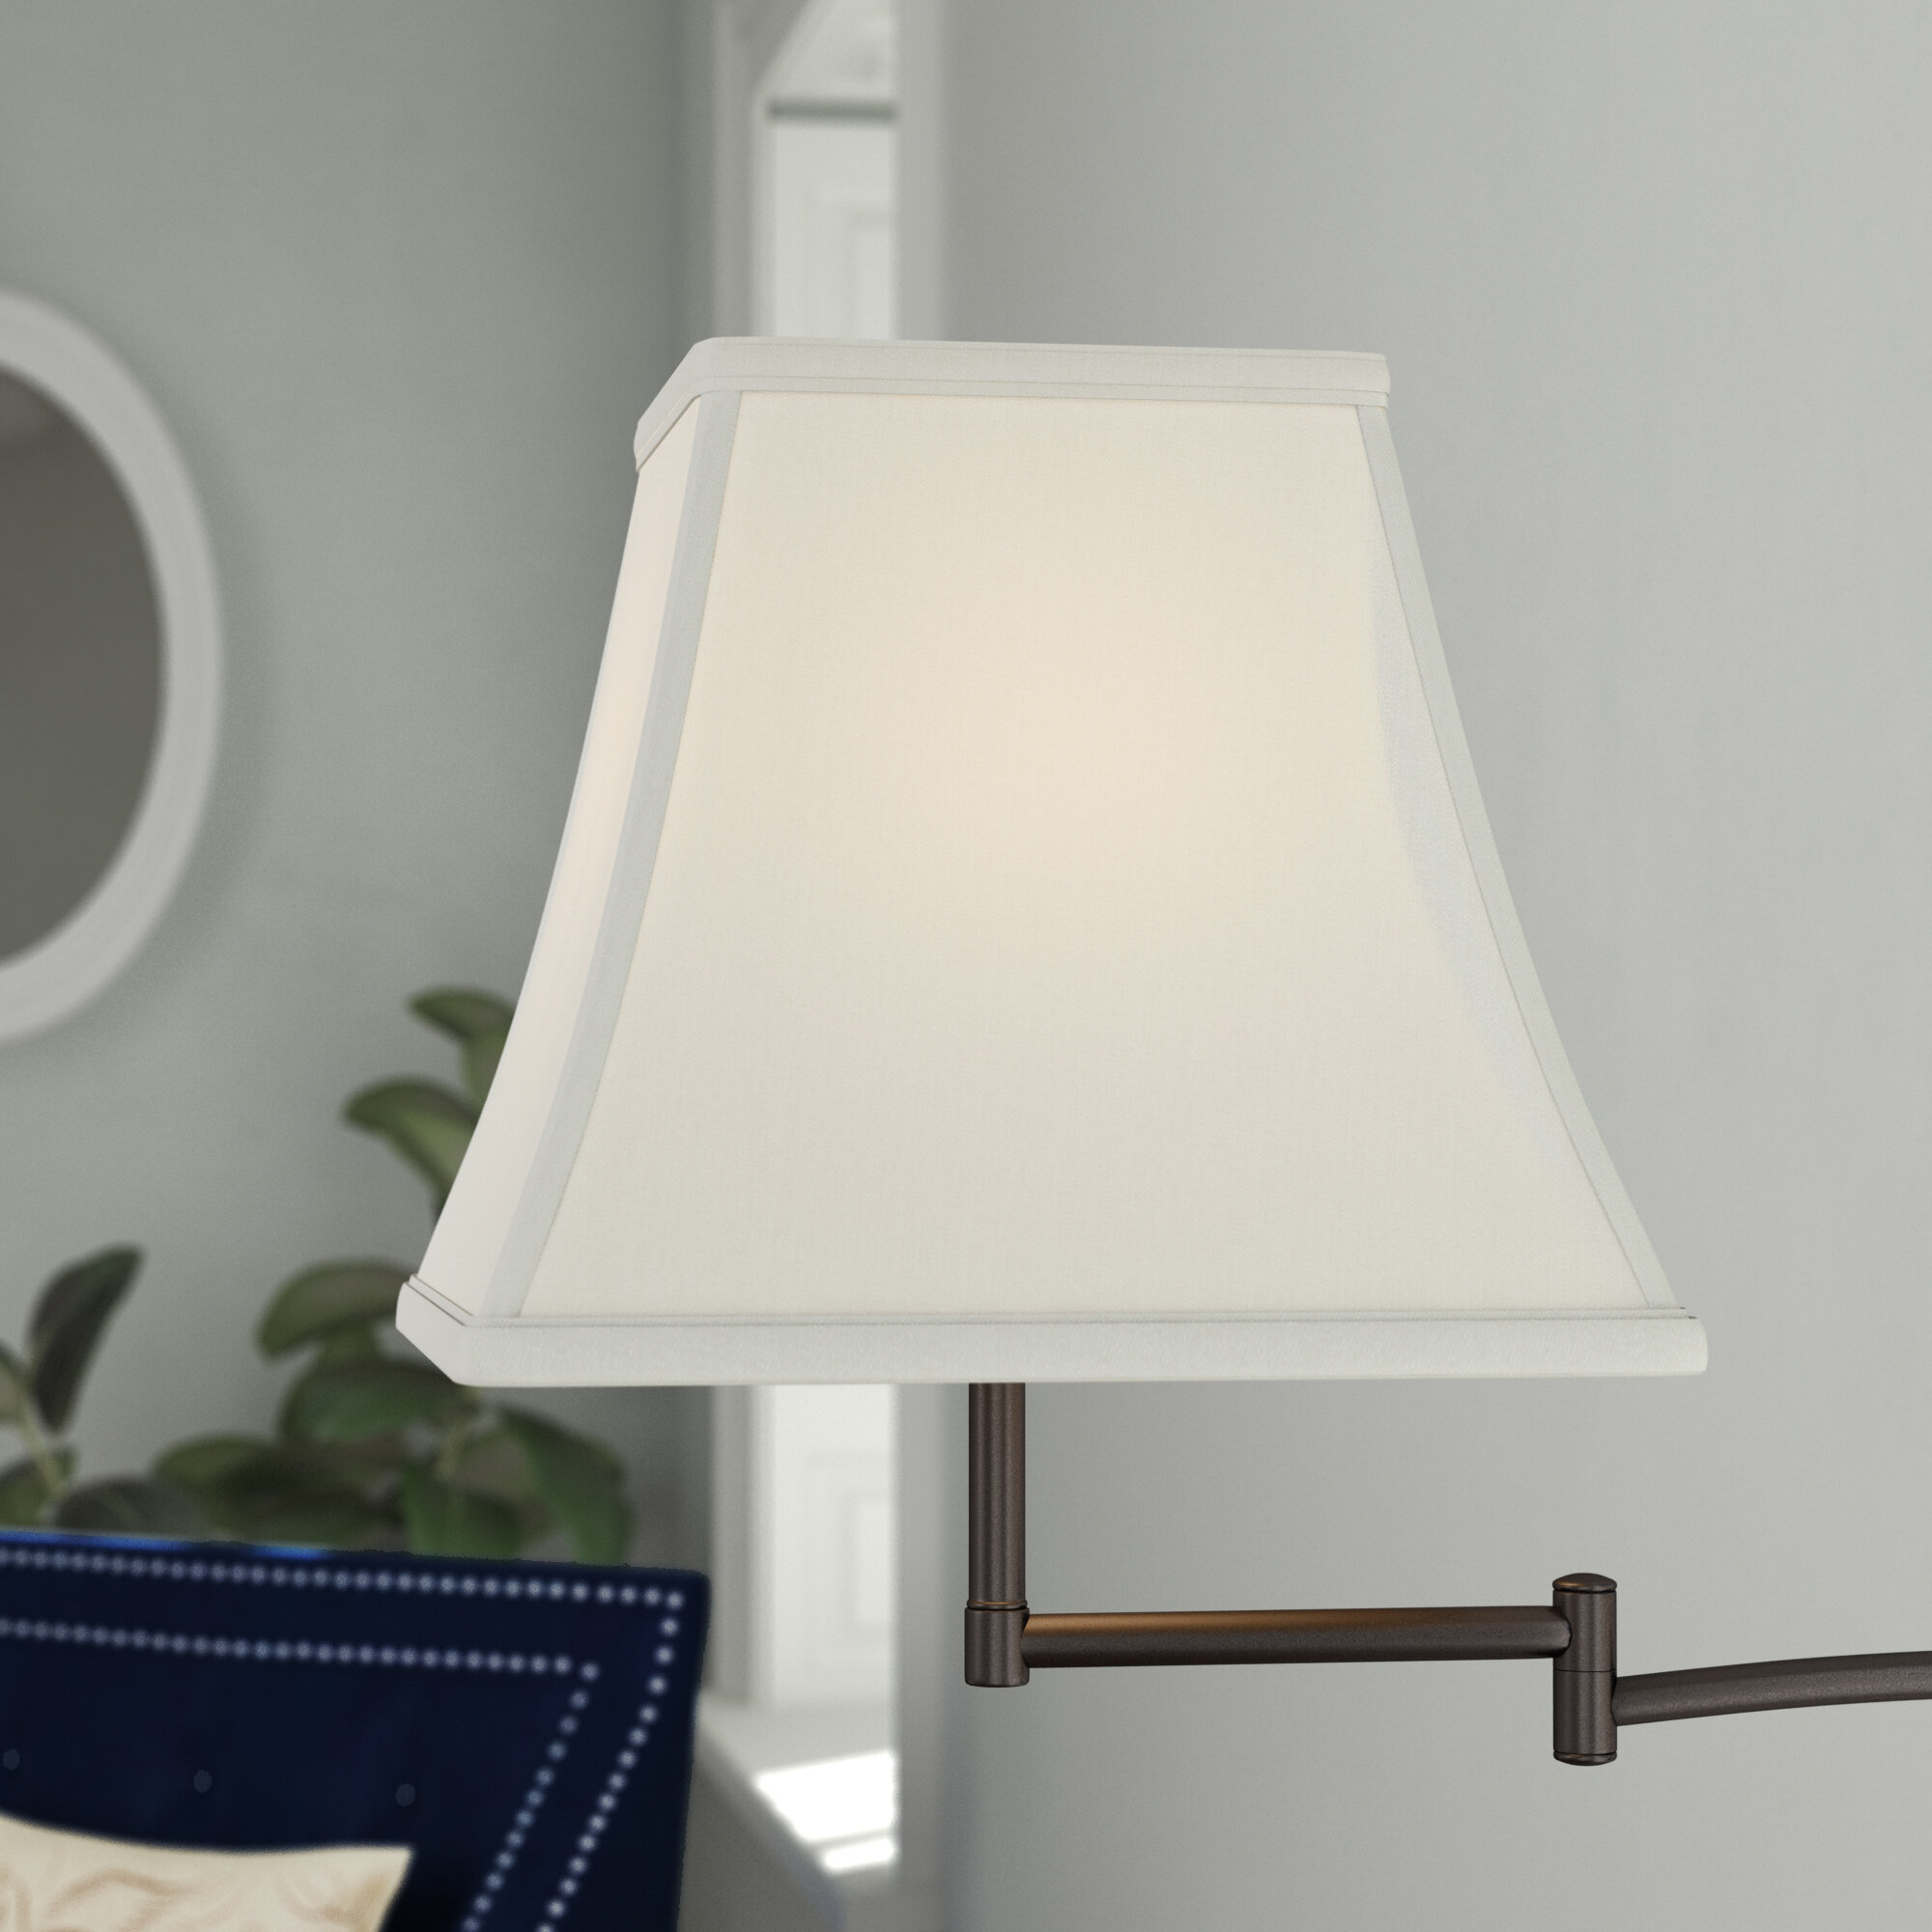 Extended Black Friday Sale On Lamp Shades Wayfair